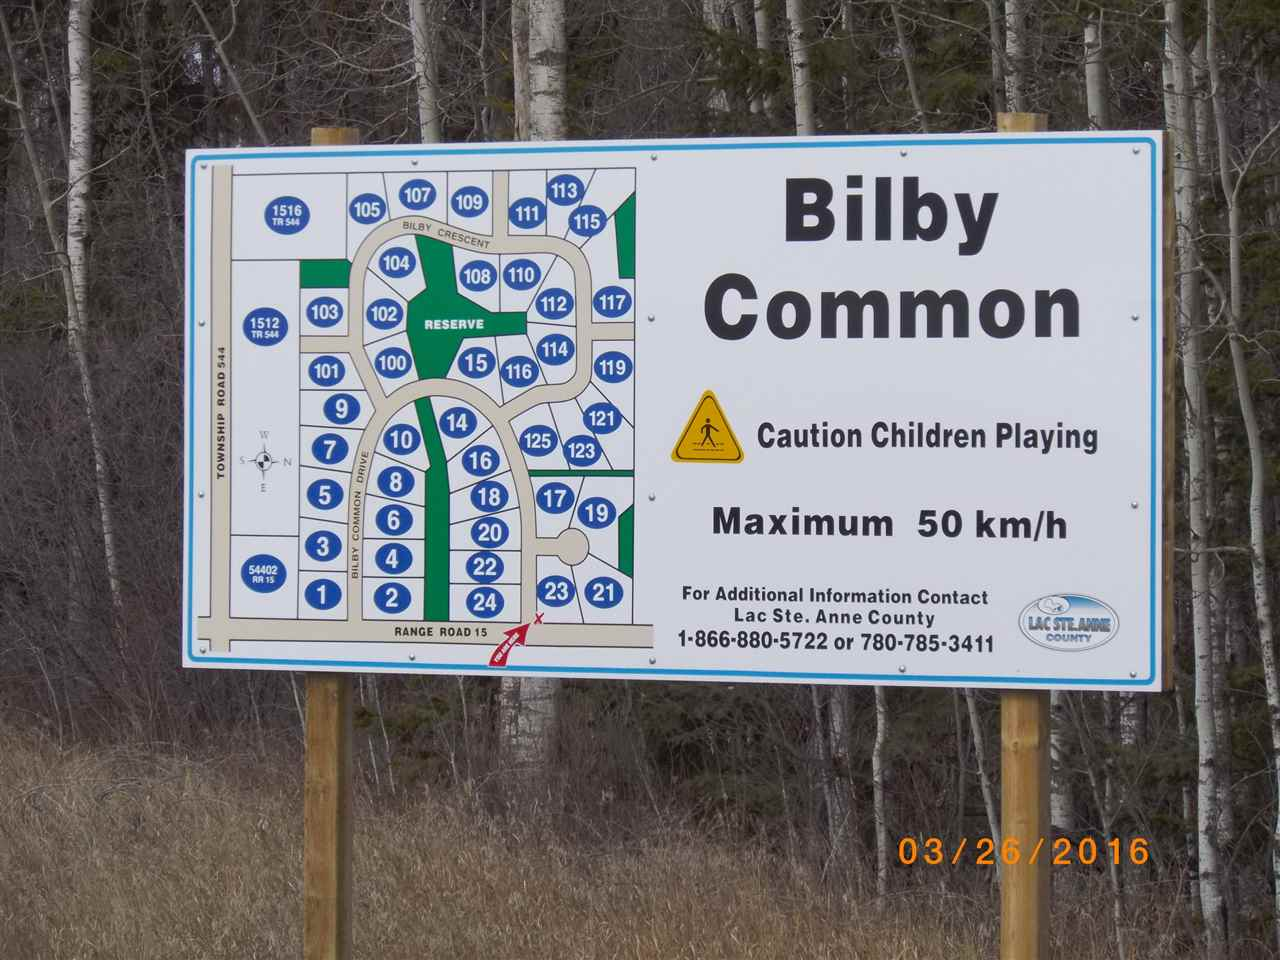 Easy 35 min from Edmonton city limits, 2 acre parcels, rolling land, power, gas & phone to property line, from STONY PLAIN 25 km and 15 min almost straight north  on 779, 20 min west of St Albert on 633. BILBY NATURAL AREA is 1 mi N, DEVILS LAKE is 10 min NE, ONOWAY 8 km, ONOWAY to ALBERTA BEACH 15 min. Min house size is 1200 sq ft, manufactured/modular ok,  GST applies. Take a look soon - BUY NOW, BUILD LATER. Make your move now. On the subdivision map this lot is 110. Legal is Lot 5 Bl 2 Plan 1123418